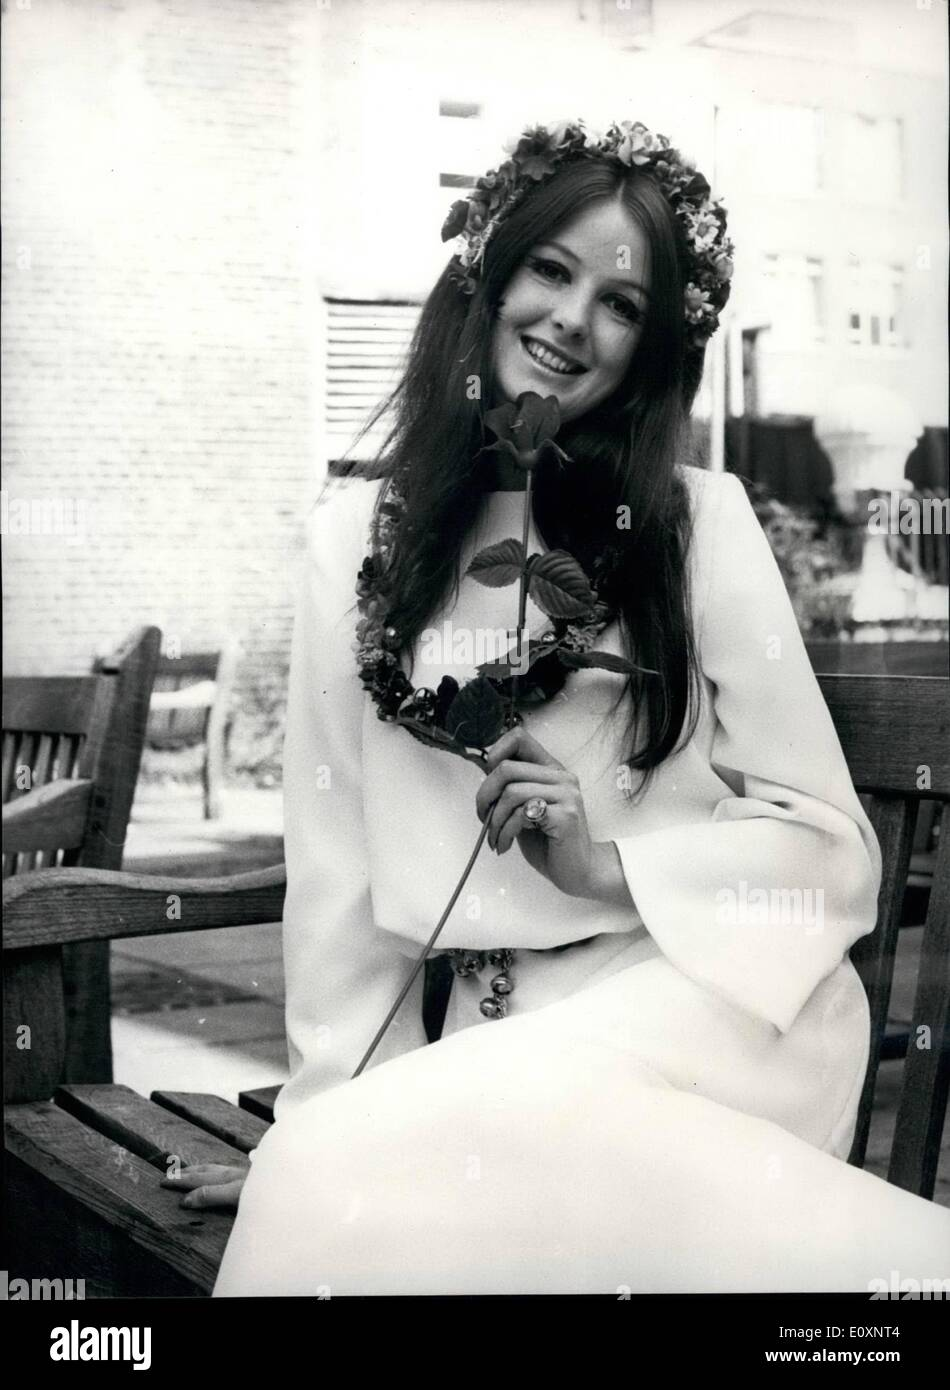 Jul. 07, 1967 - THE HIPPY CULT IN BRIDAL WEAR. The Hippy Cult is now happening in bridal wear and at Young's Dress Hire in Wardour Street, a barefest 'bride' wearing flowers in her hair and balls round her for brides of Aurumn '67. Mr. Louis Young where idesit is to bring out this range, belived teh Hippies, a powerful effect on fashion genertally - Stock Image